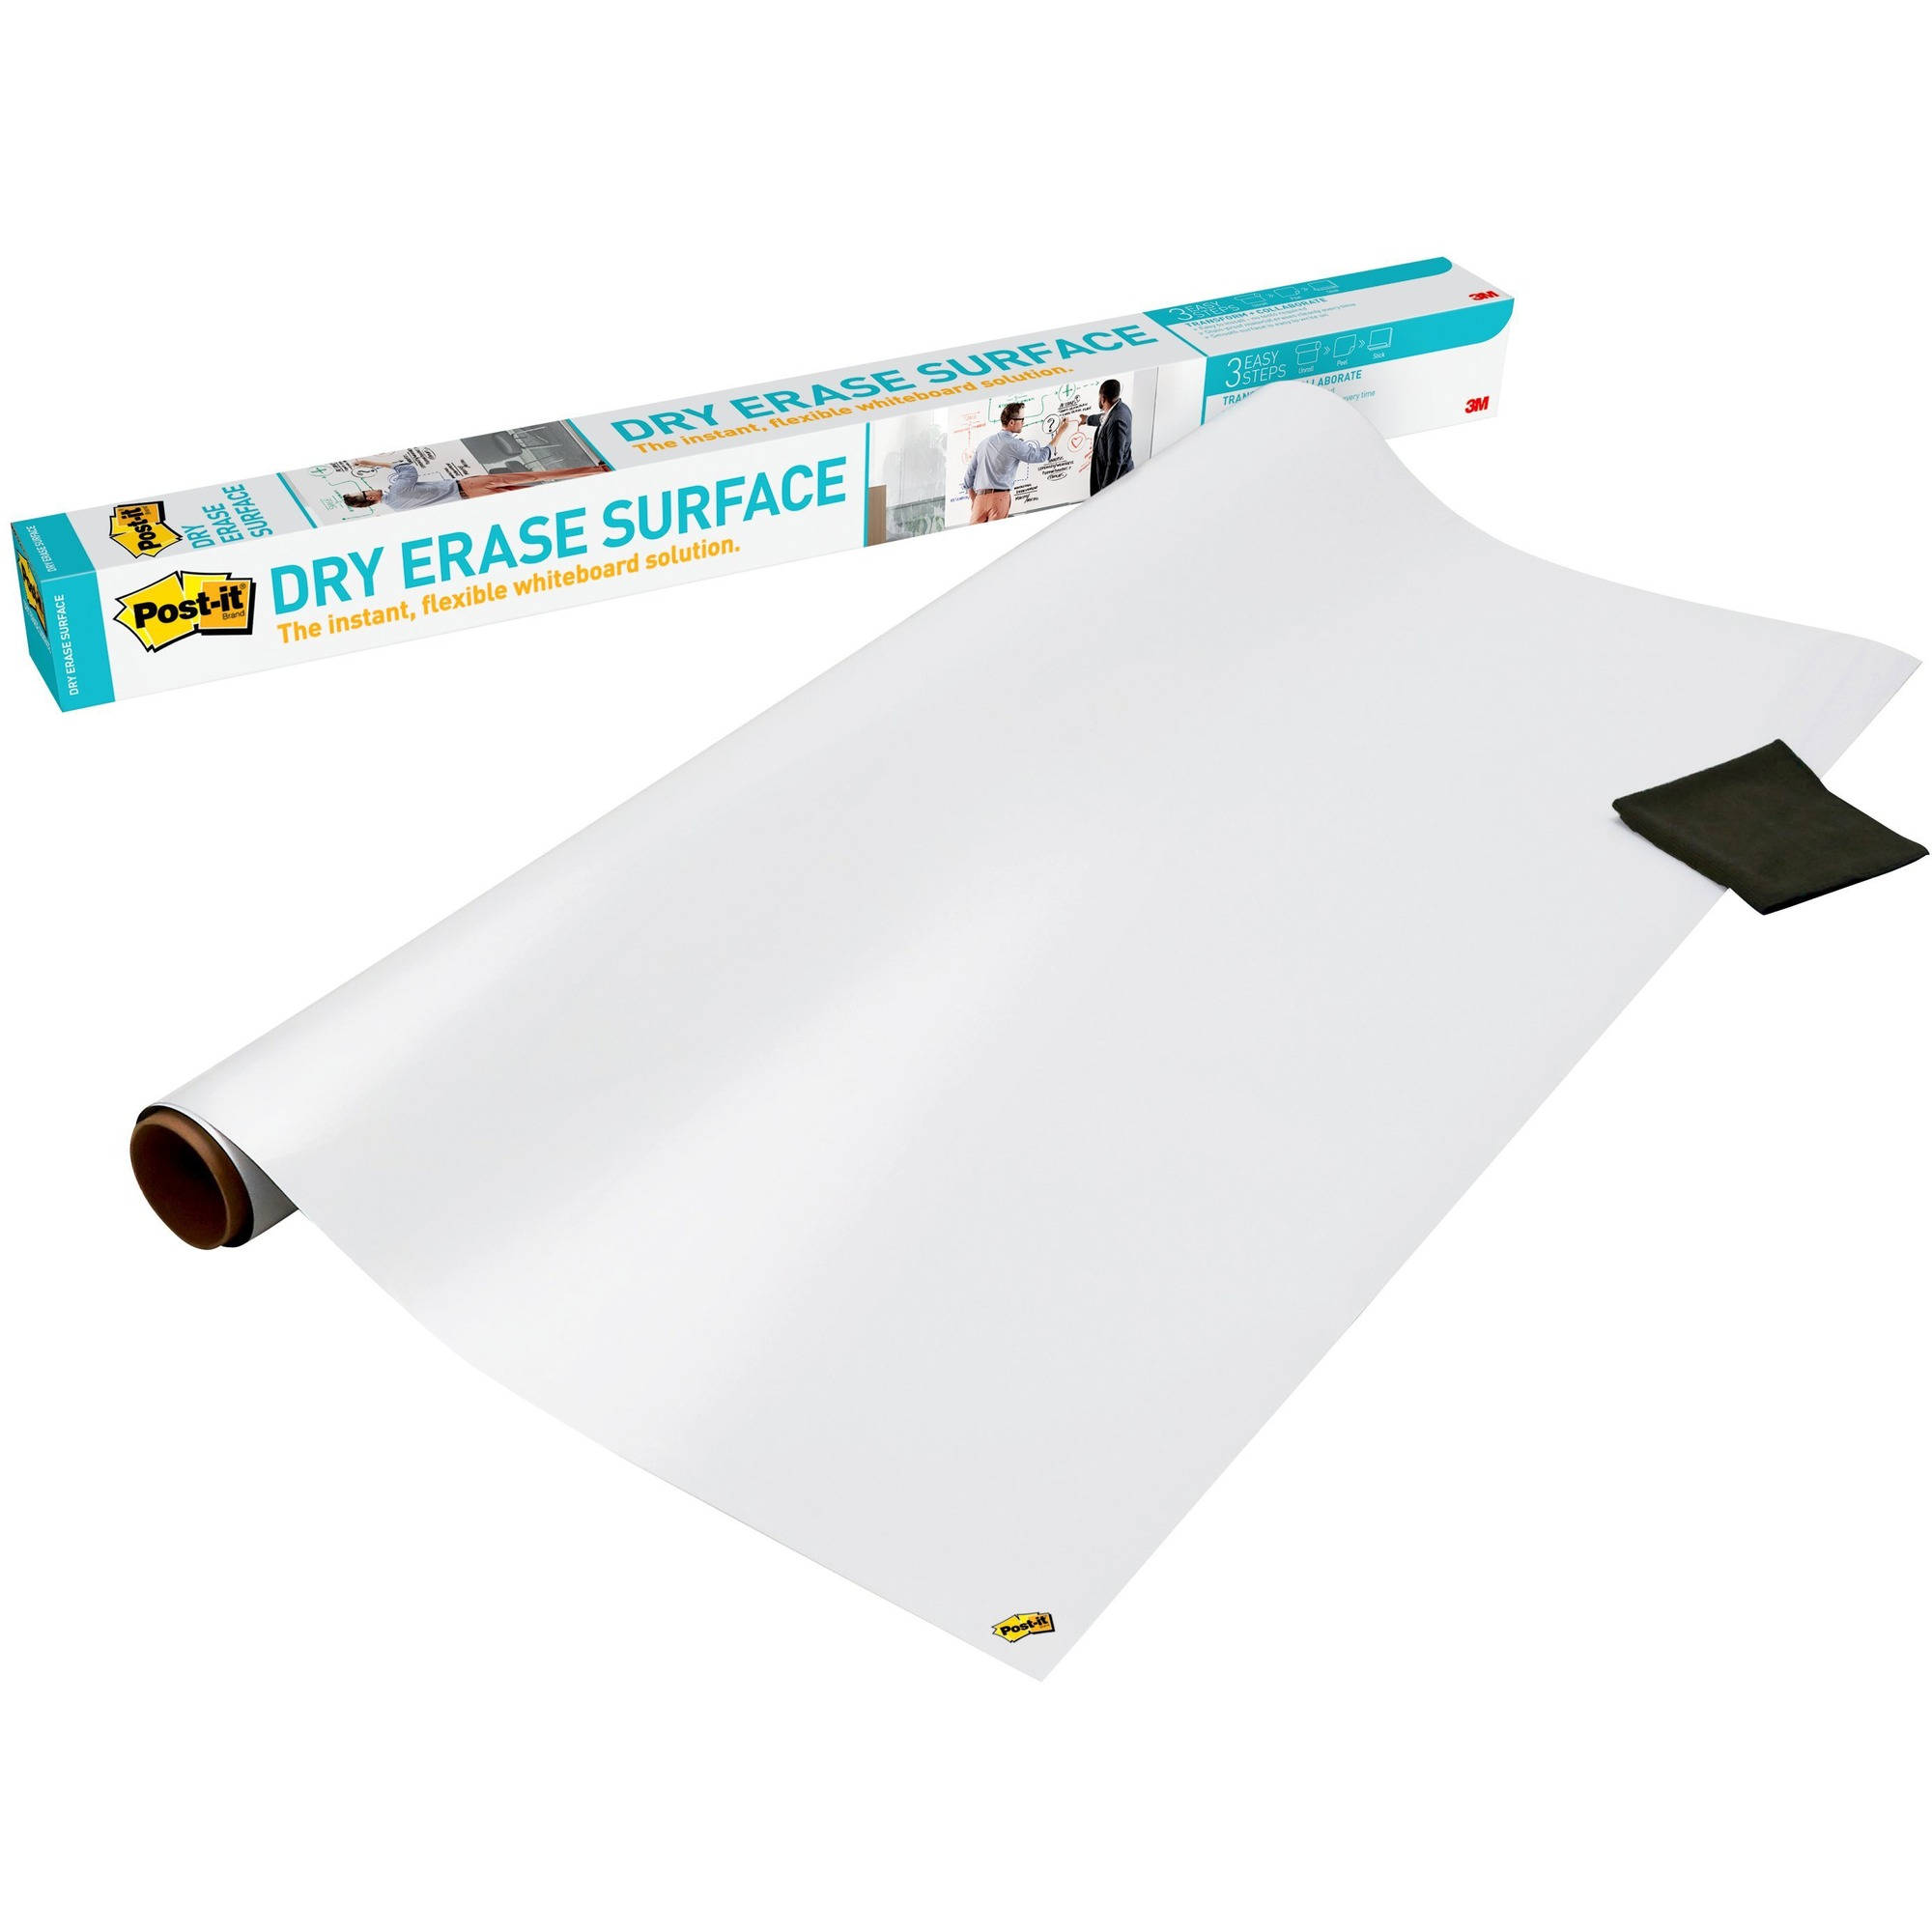 3M Post-it Self-stick Dry Erase Film Surface, 48 X 36, White - 36 (3 Ft) Width X 48 (4 Ft) Length - White - Rectangle - 1 / Pack